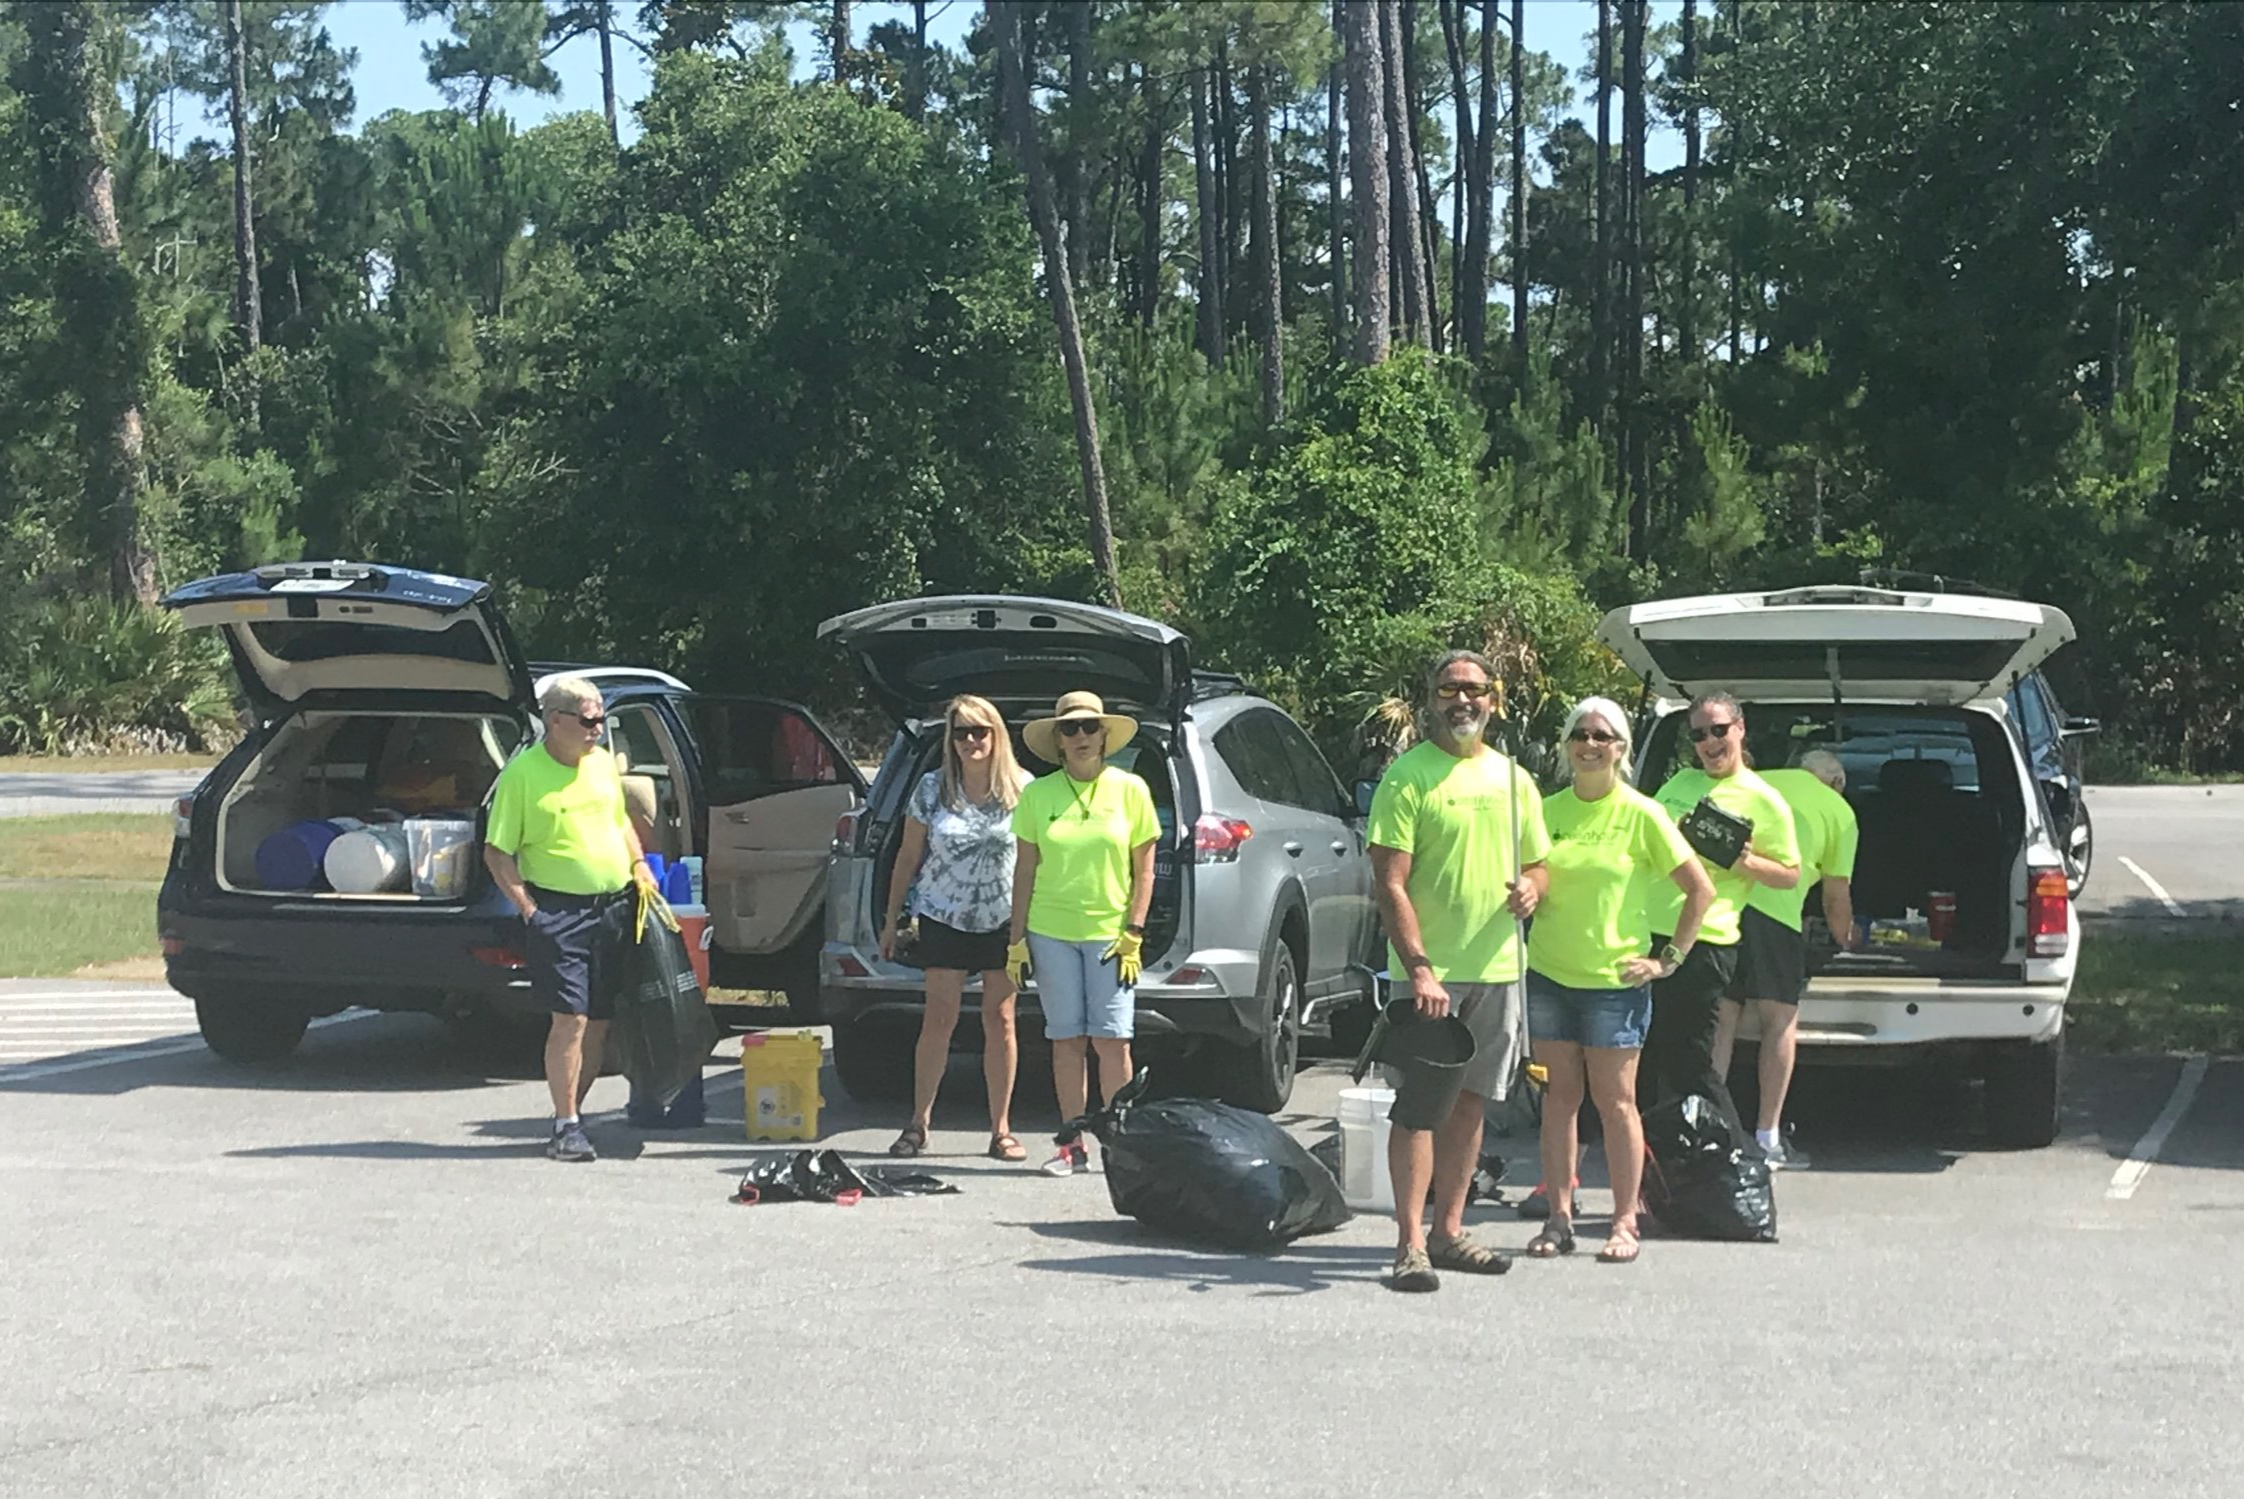 - Naval Live Oaks 17 volunteers picked up 76 lbs and 21 people collected a further 62 lbs at Bob Sikes Bridge's south end at the Beach. Andy contributed another 55 lbs from the beach. This week's total was 193 lbs